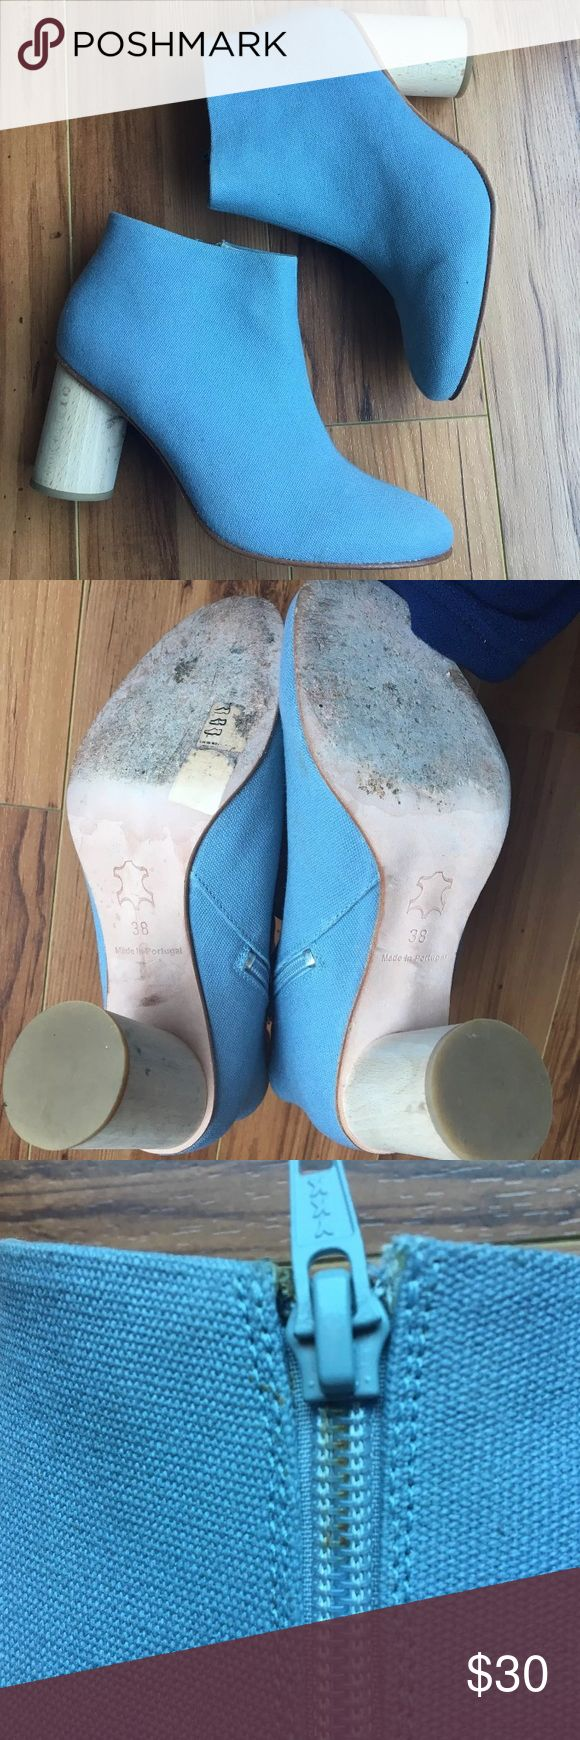 COS Powder Blue Canvas Booties Rounded Heel Sz 7 Overall good condition- does have small yellow discoloration on zipper (see pic). Bundle & Save 😊 COS Shoes Ankle Boots & Booties